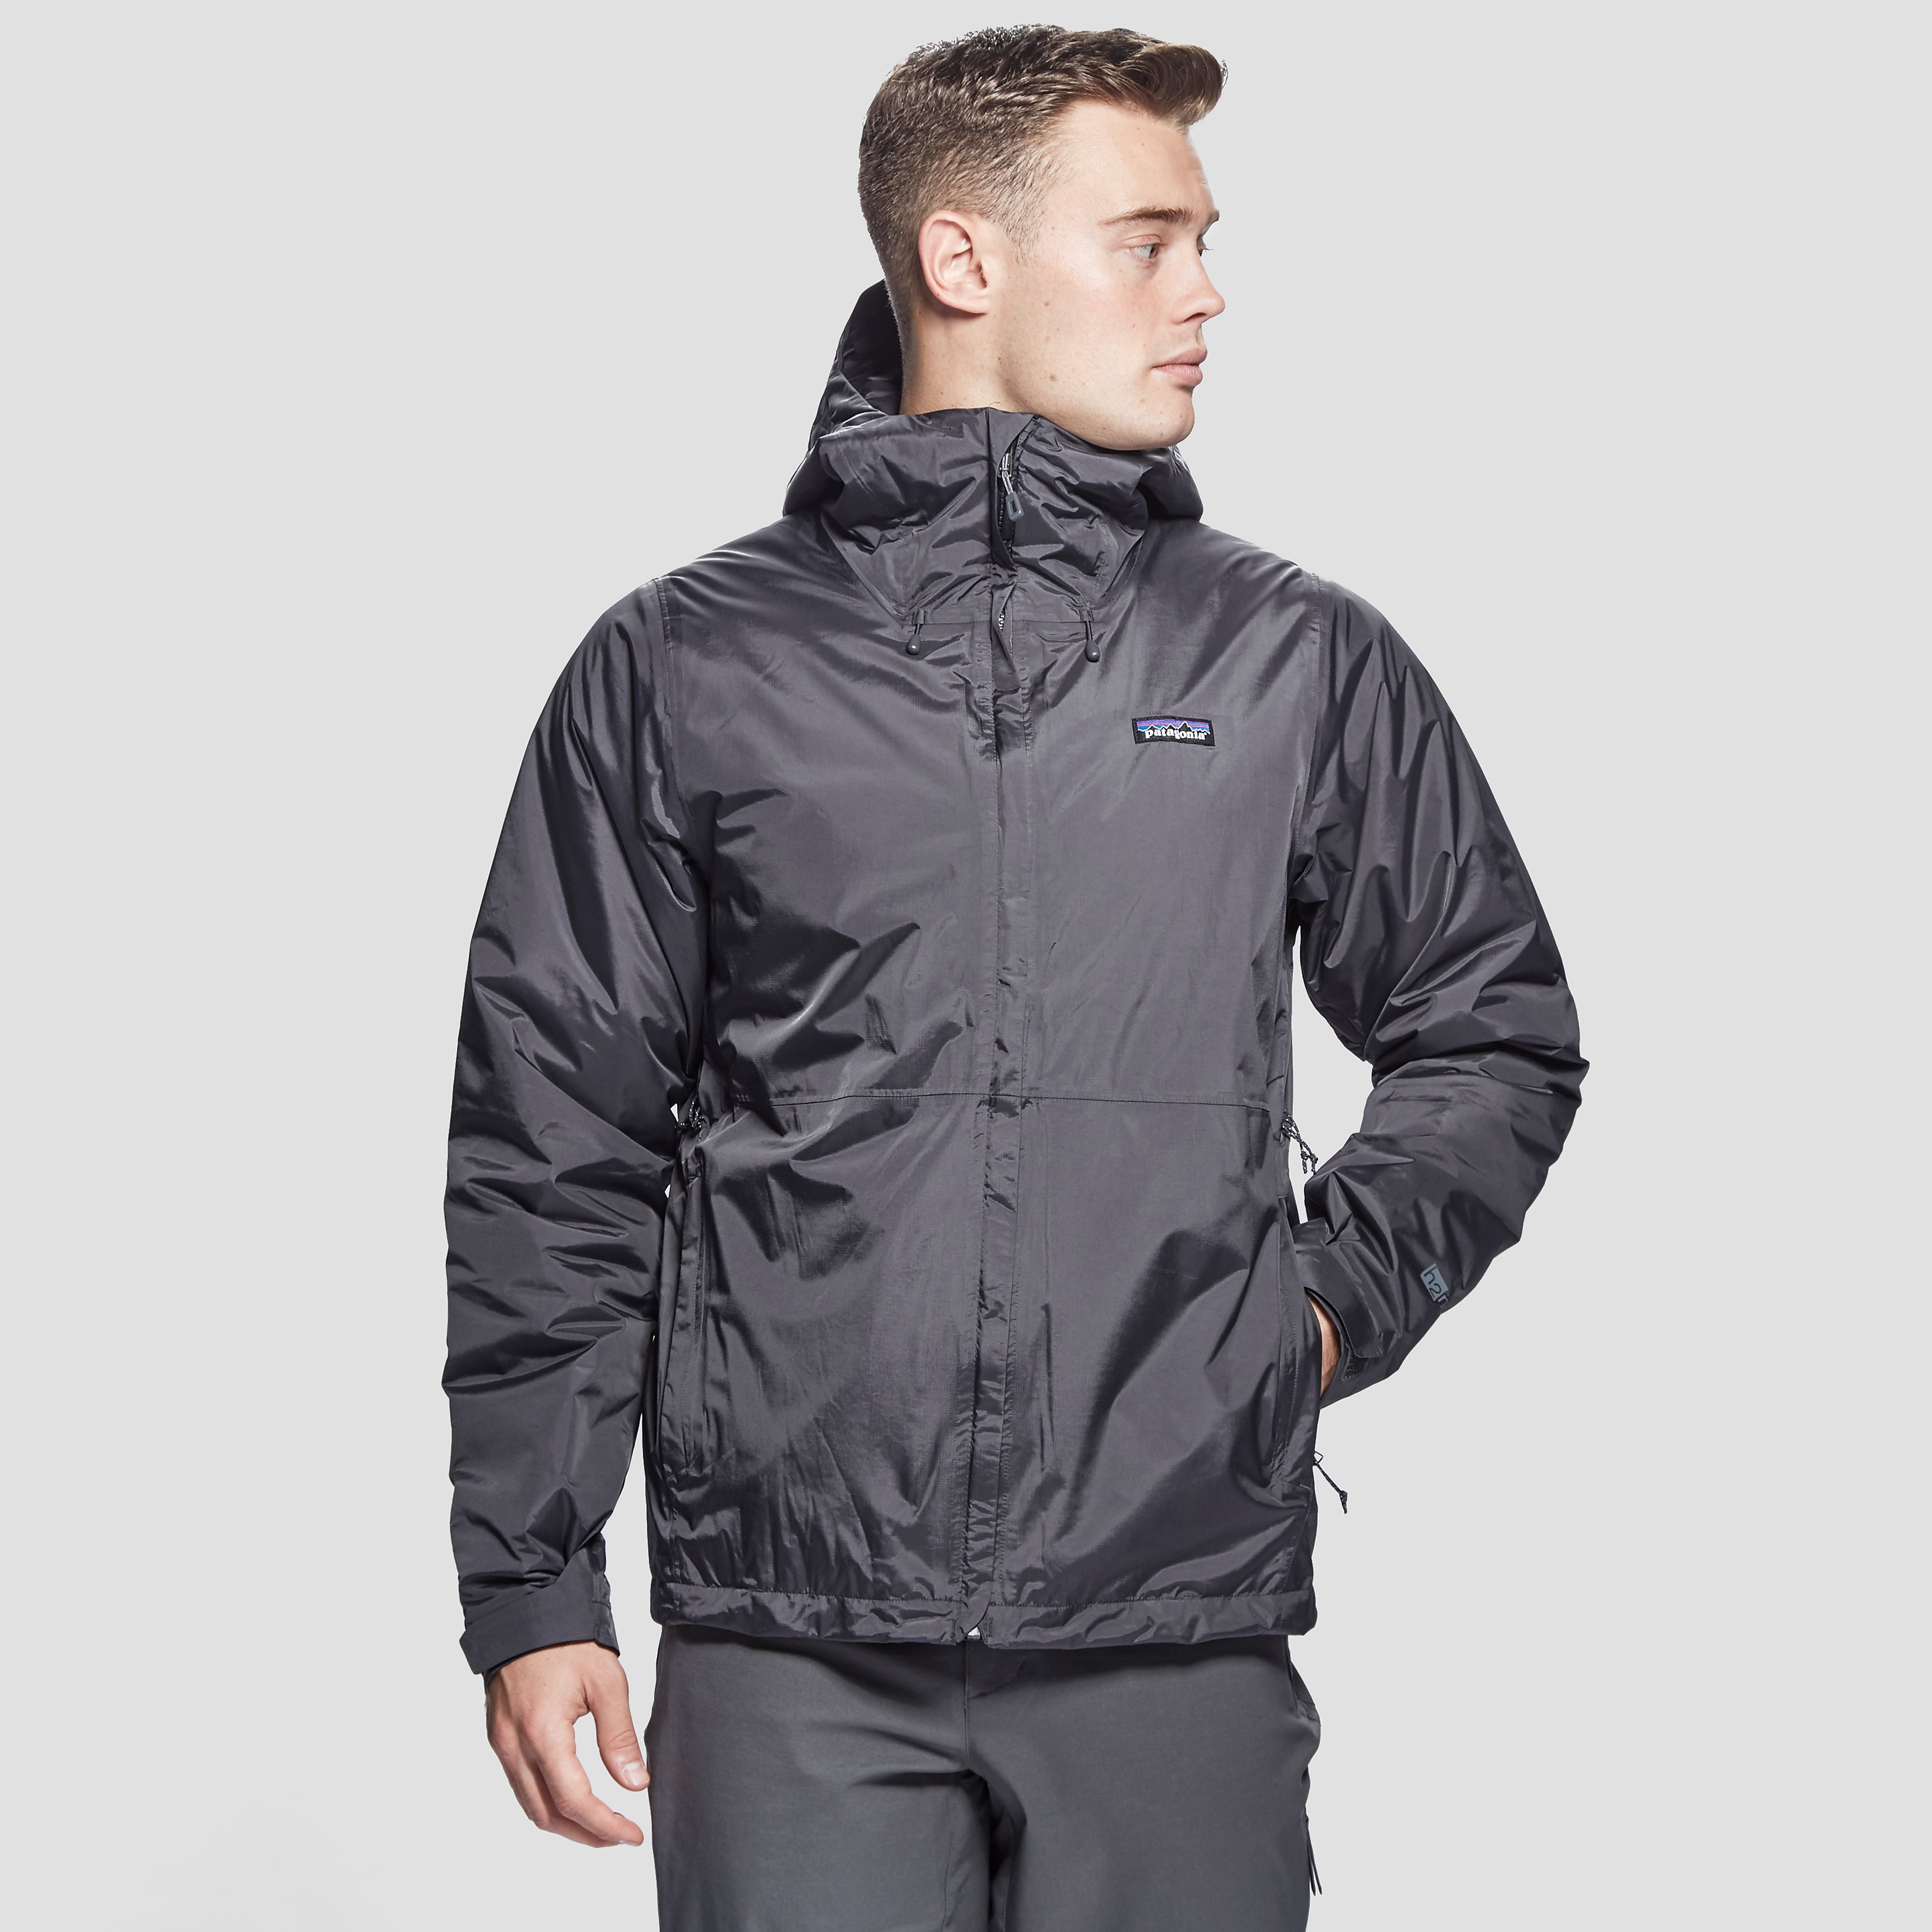 Patagonia Insulated Men's Torrentshell Jacket